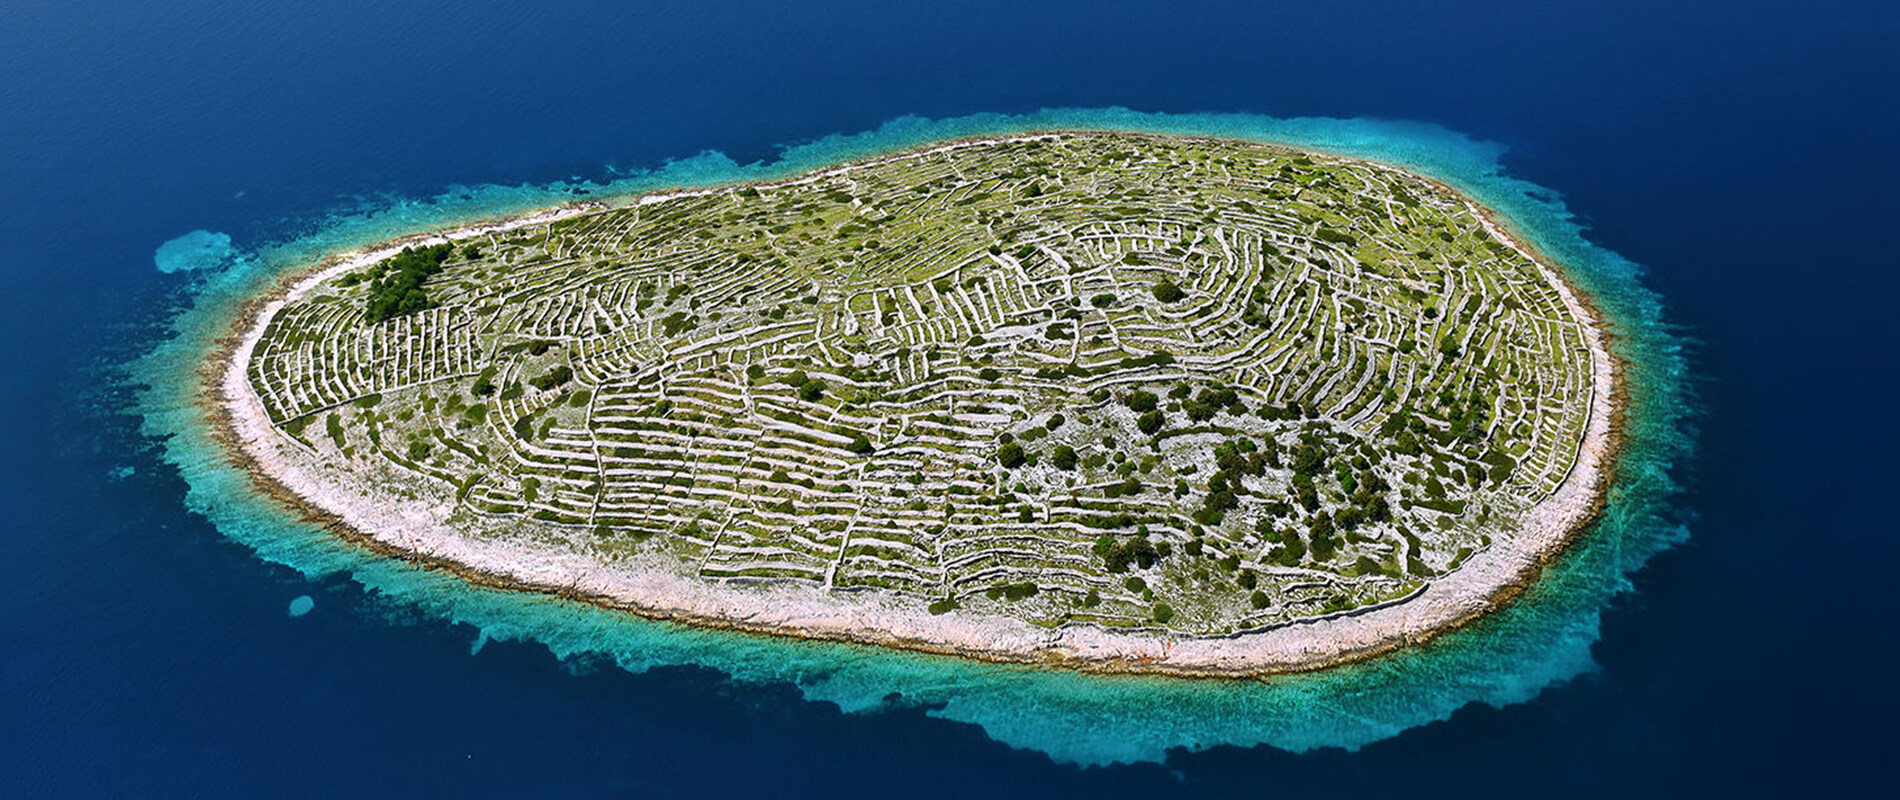 Baljenac, An Island in the Shape of a Fingerprint